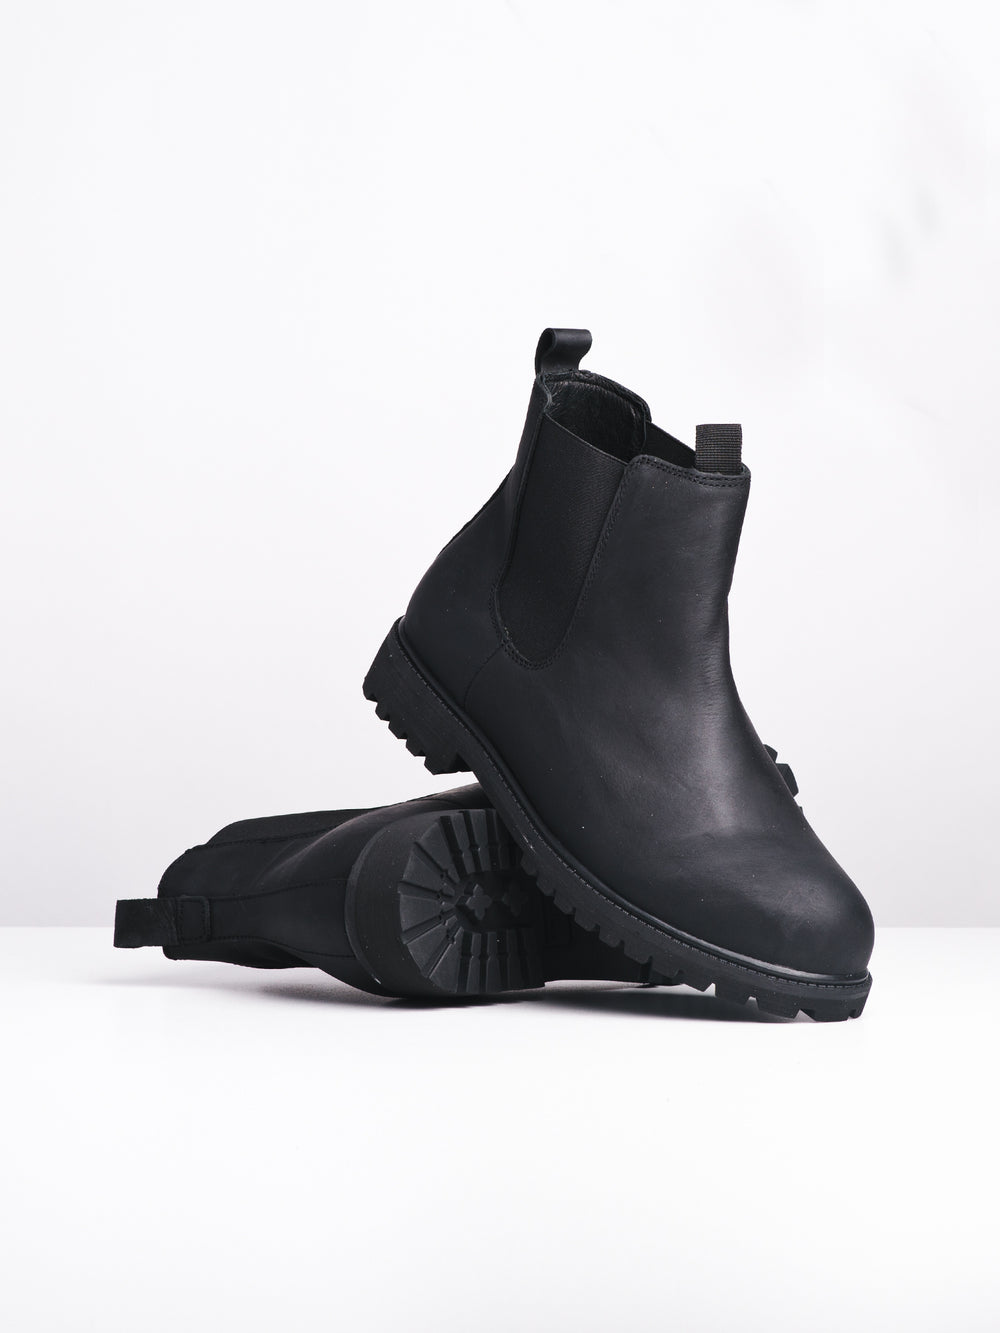 MENS FINLEY - BLACK-D4B - CLEARANCE